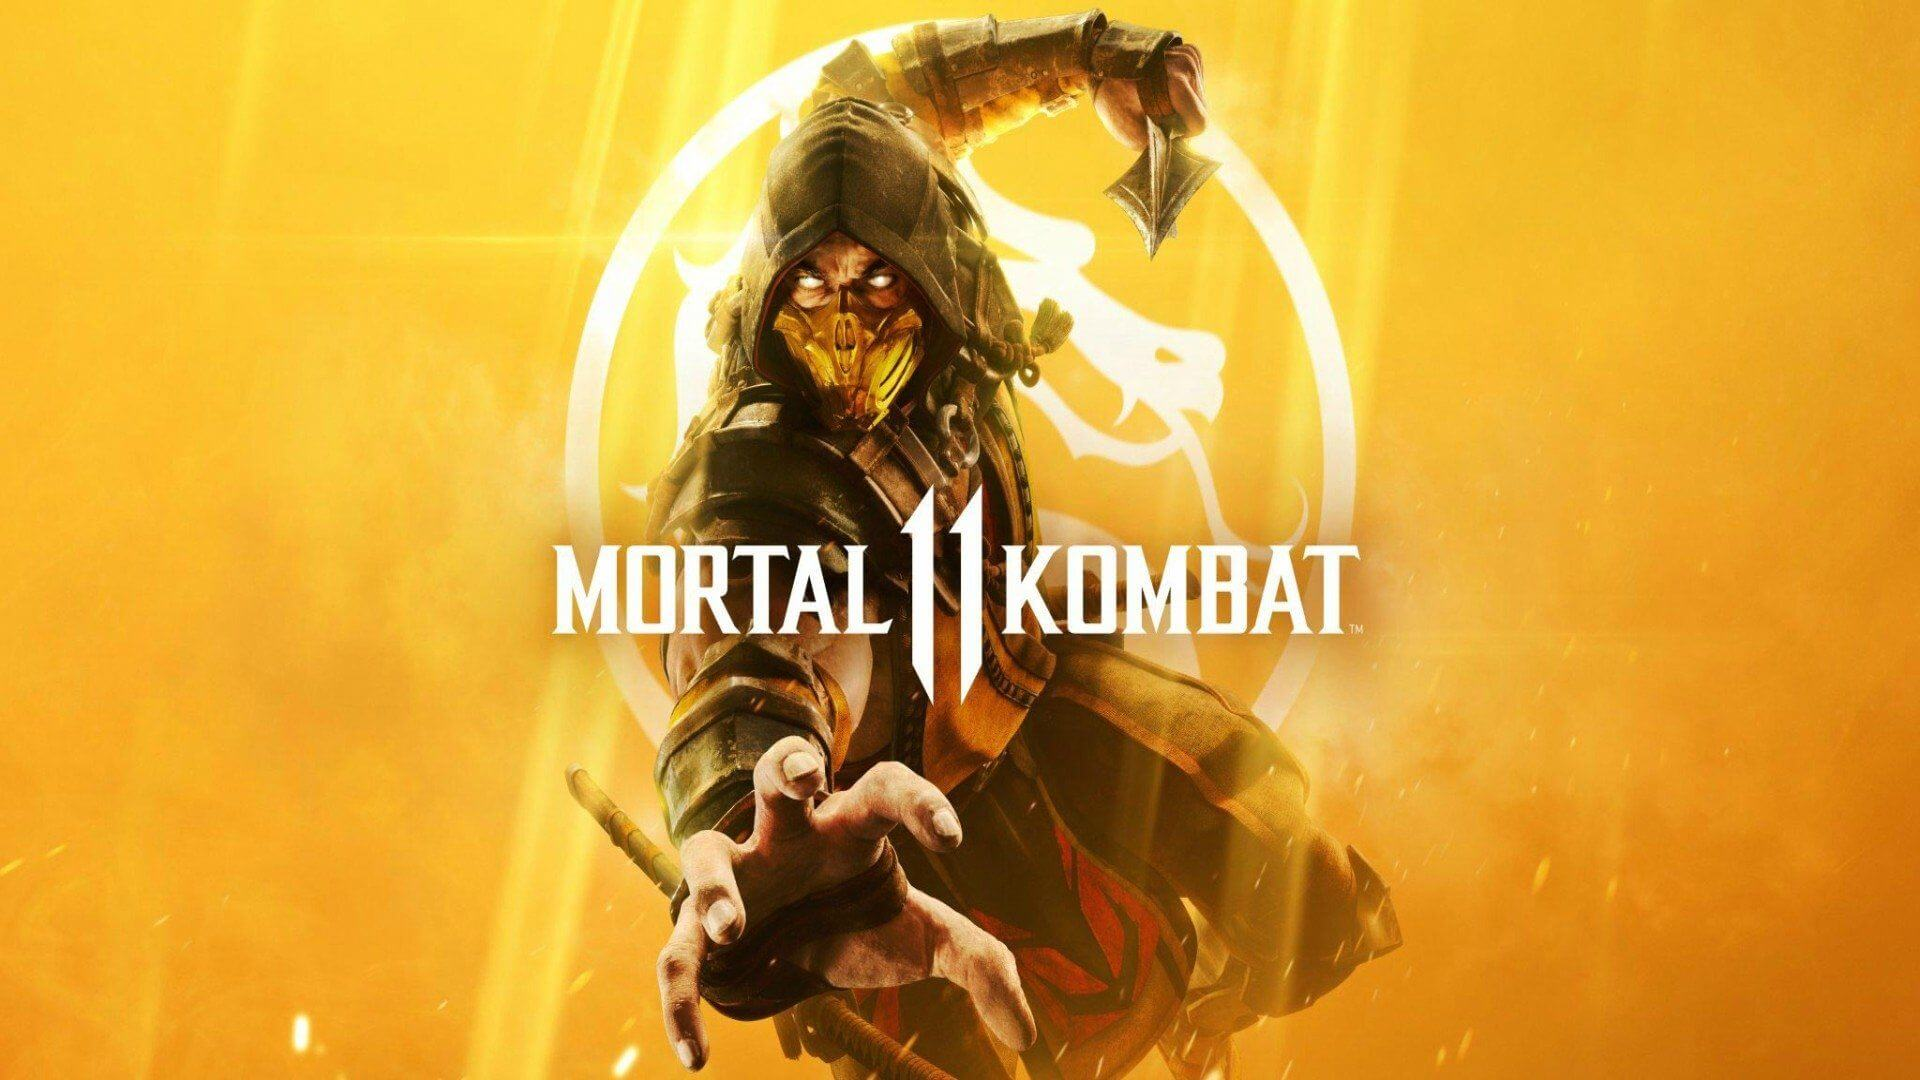 Mortal Kombat 11 DLC May Include Another Character From the DC Comics